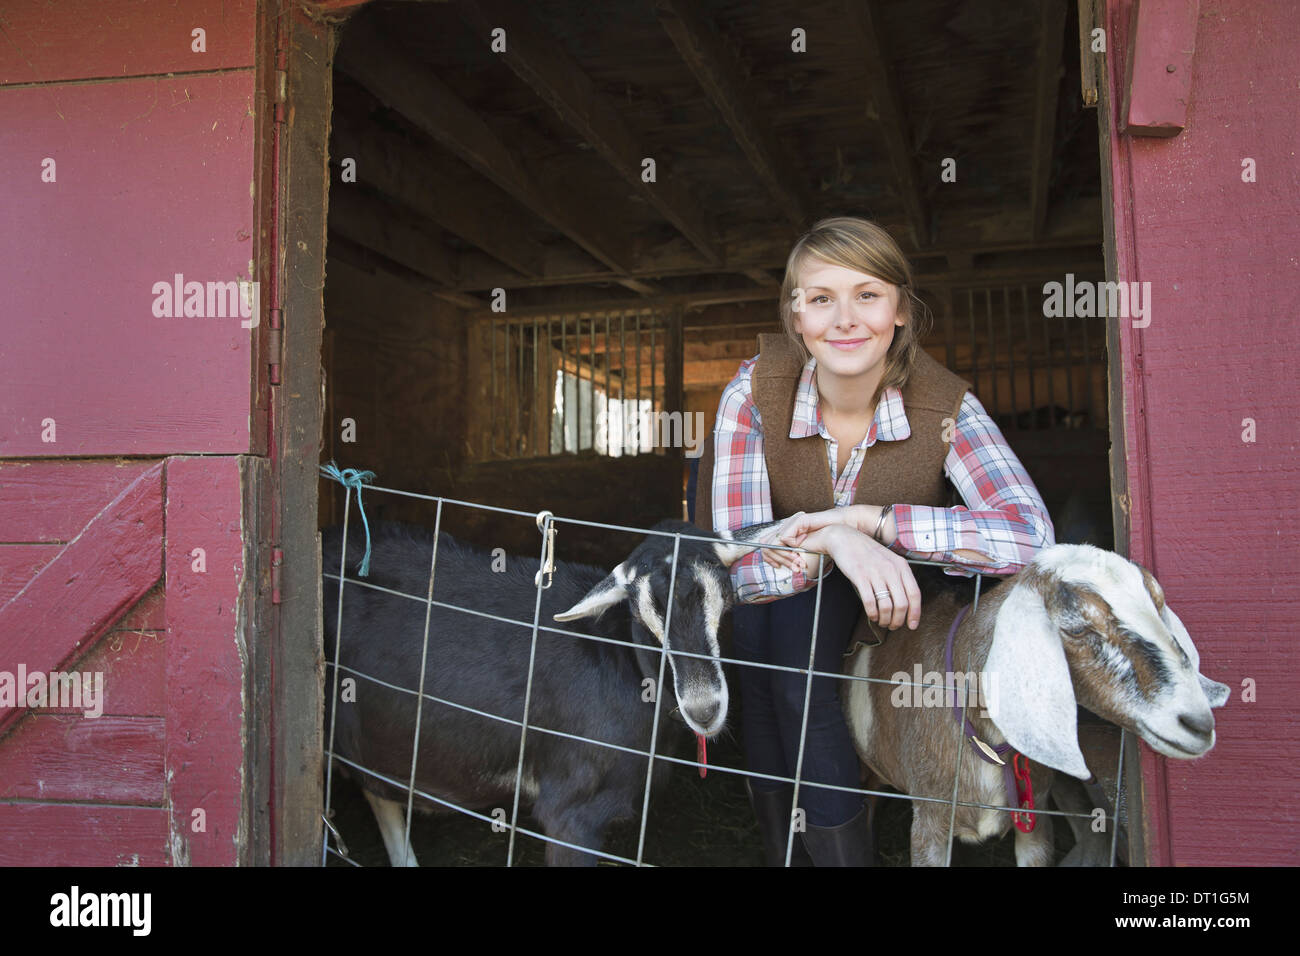 A goat farm A young girl leaning on the barrier of the goat shed with two animals peering out - Stock Image